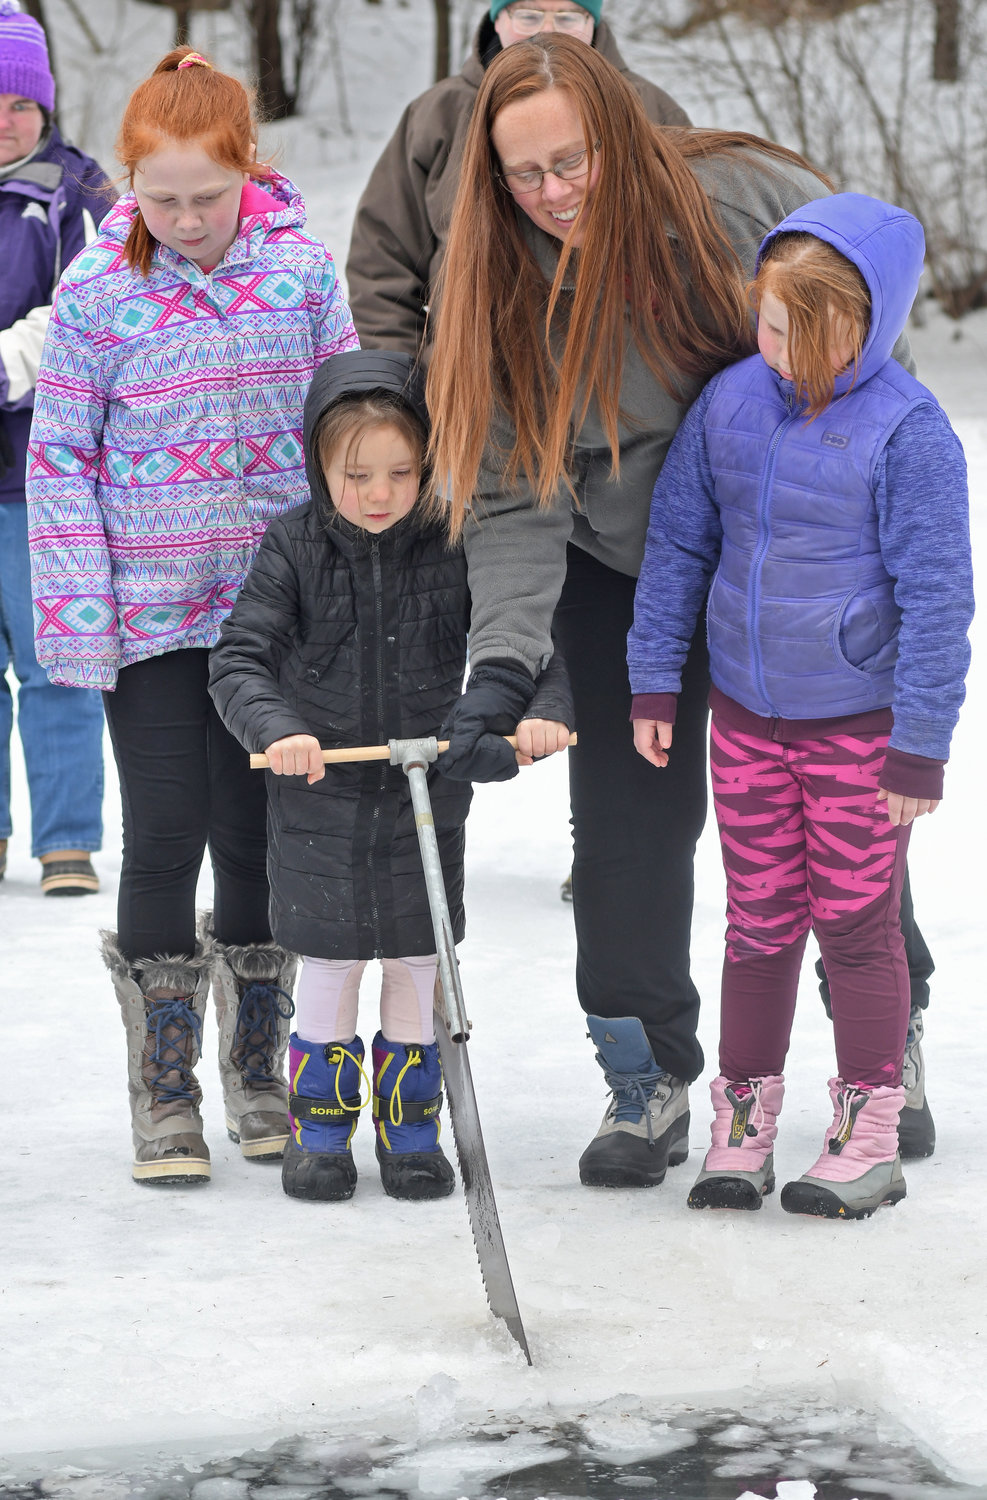 CUTTING BLOCKS — Hadley Scherer, 10, her mom Kyla Scherer and Scarlett Scherer, 8, watch and help Hazel Fox, 5,  cut ice blocks out at the Rogers Center on Satruday afternoon.